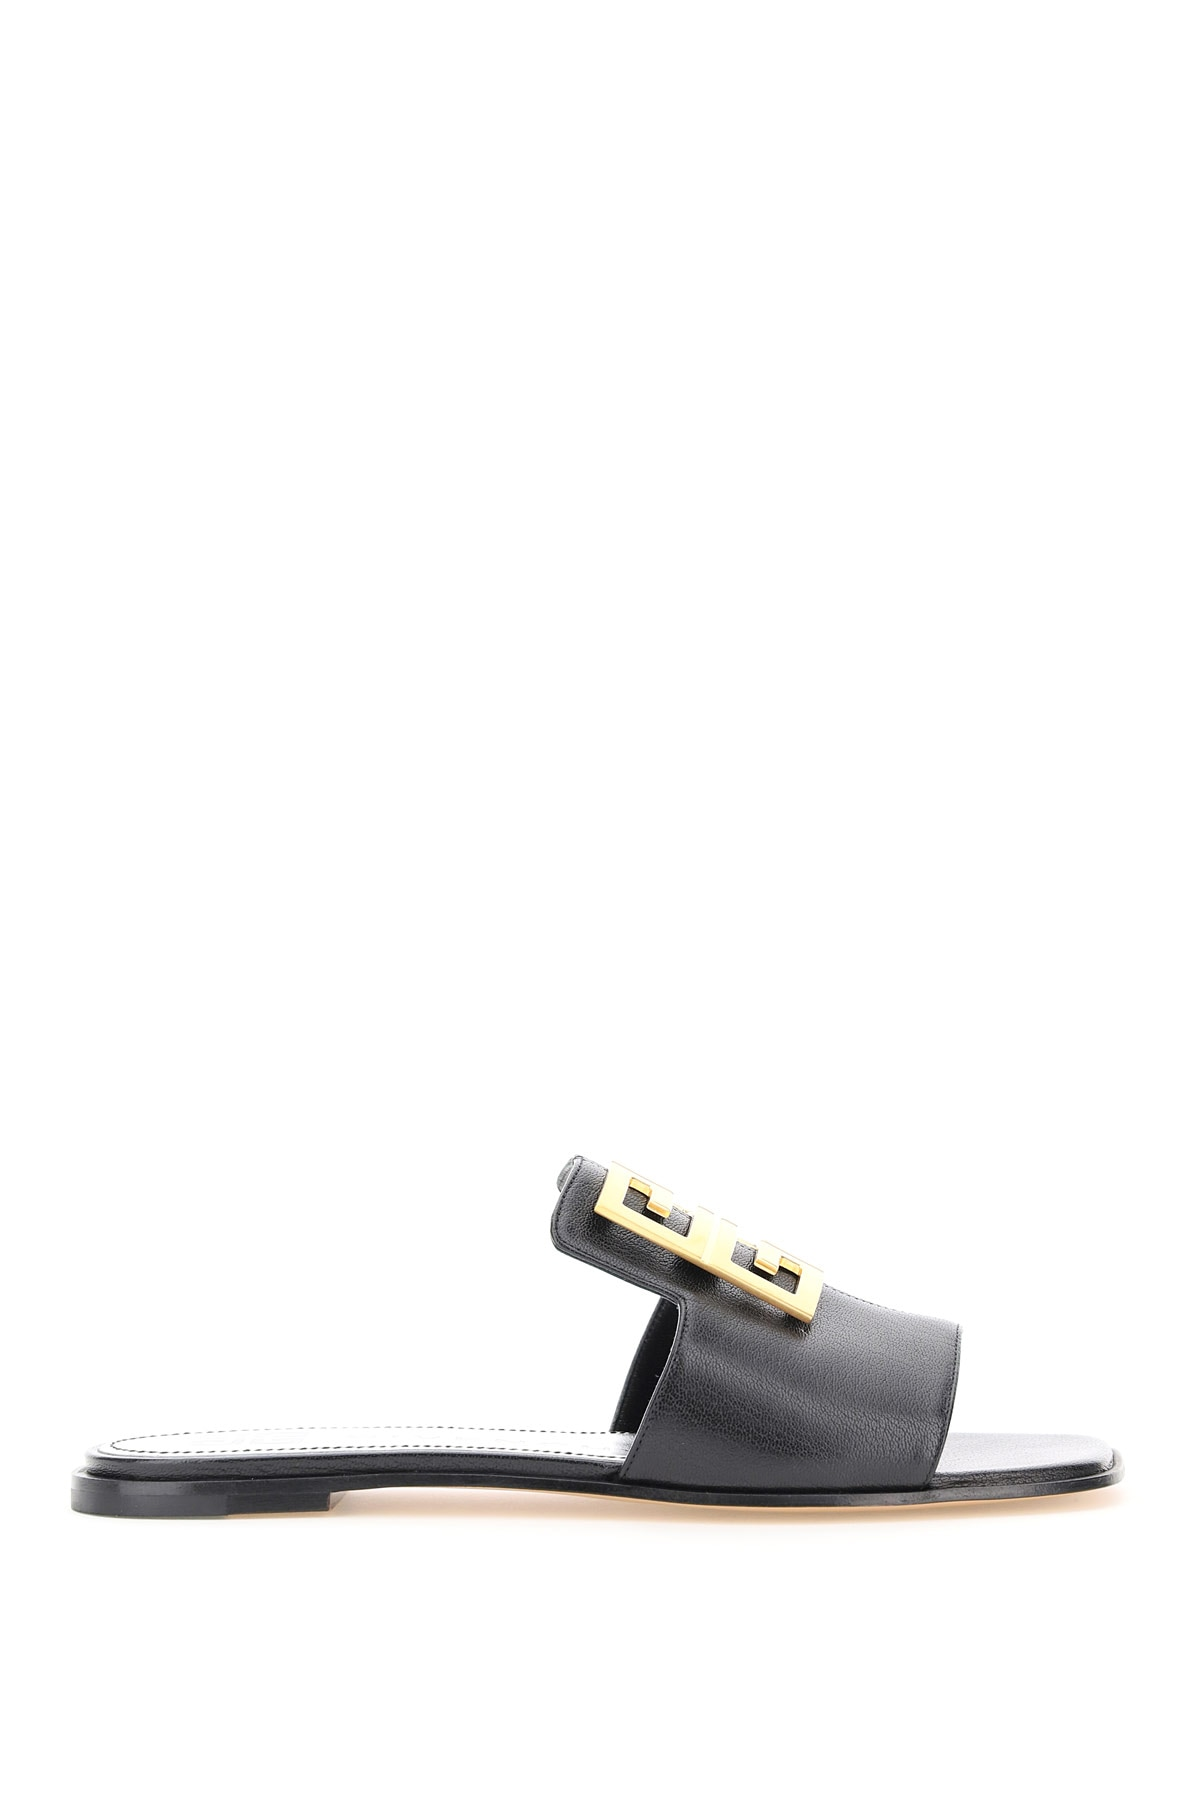 GIVENCHY LEATHER MULES WITH 4G LOGO 37 Black Leather